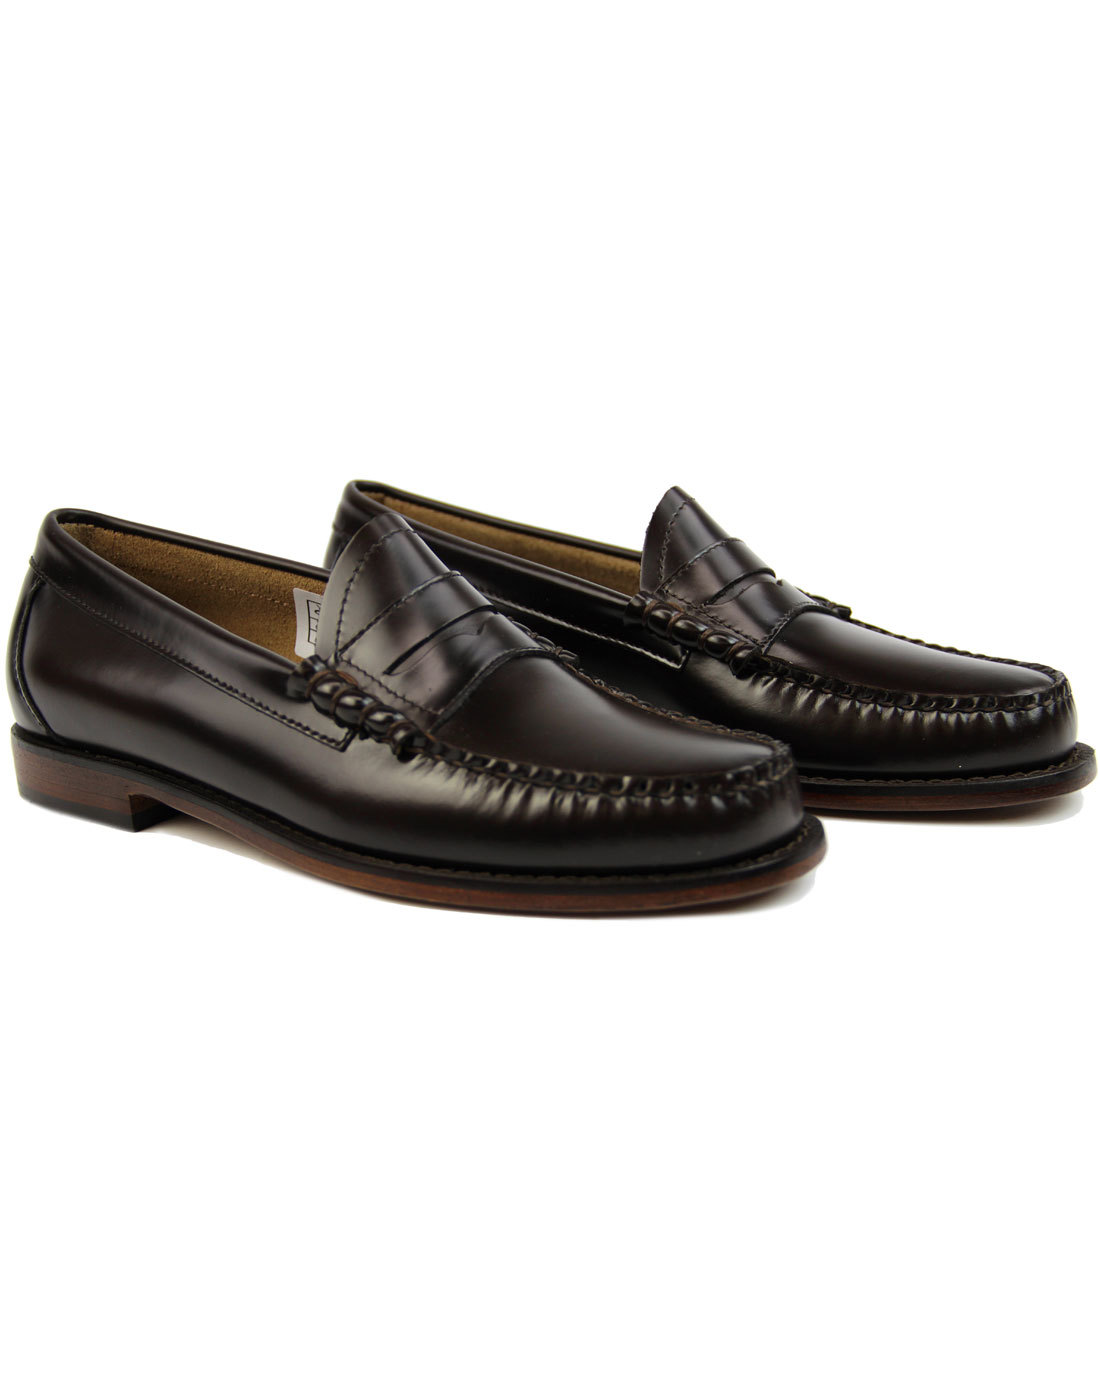 099209d9294 BASS WEEJUNS Larson Retro 60s Mod Penny Loafers in Dark Brown